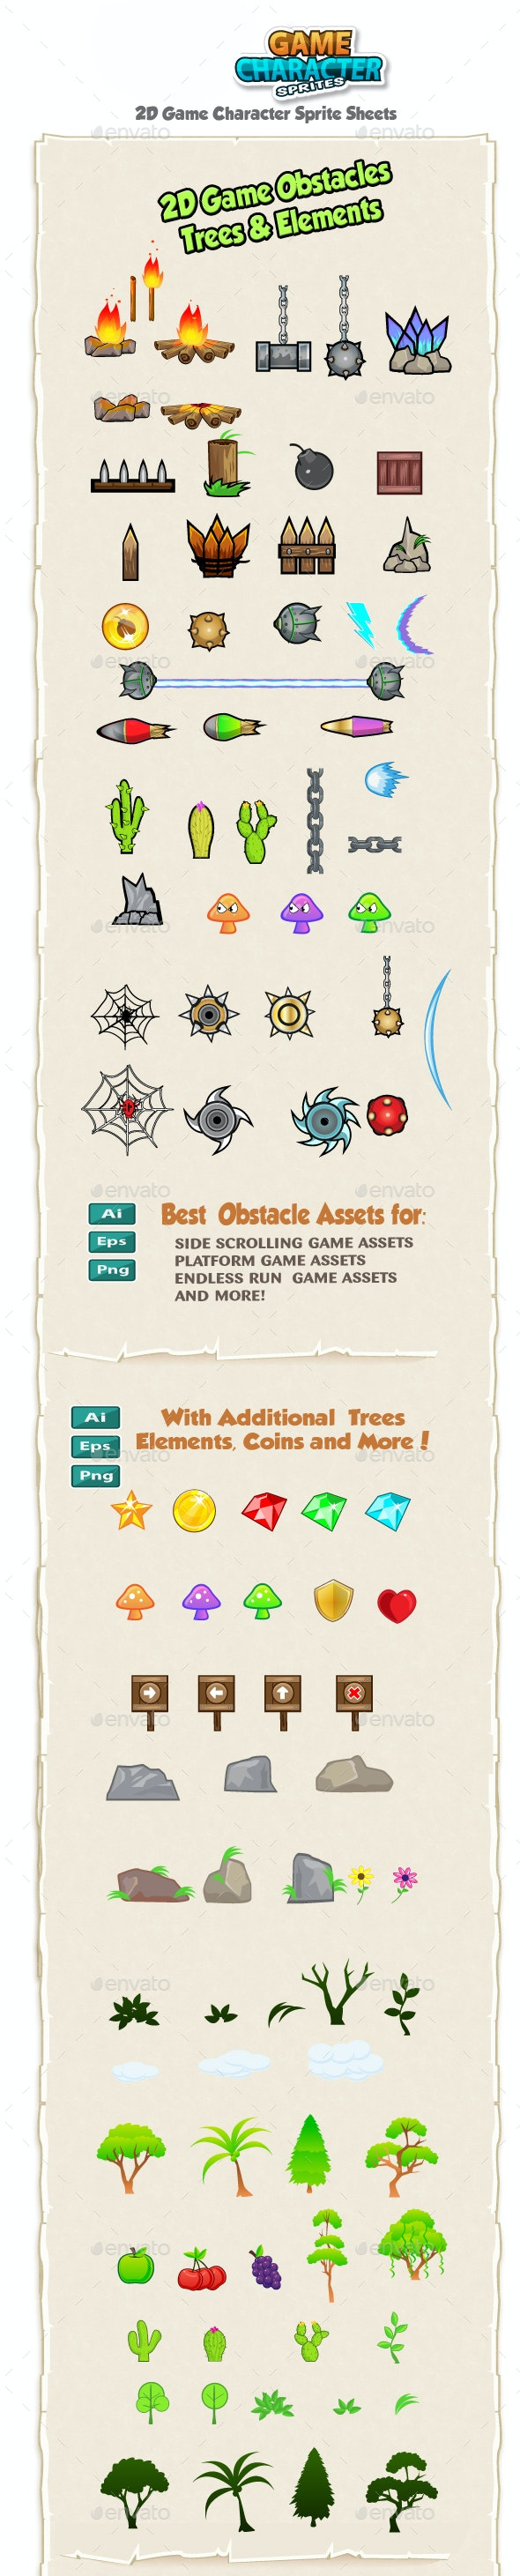 2D Game Obstacles, Trees & Elements - Sprites Game Assets